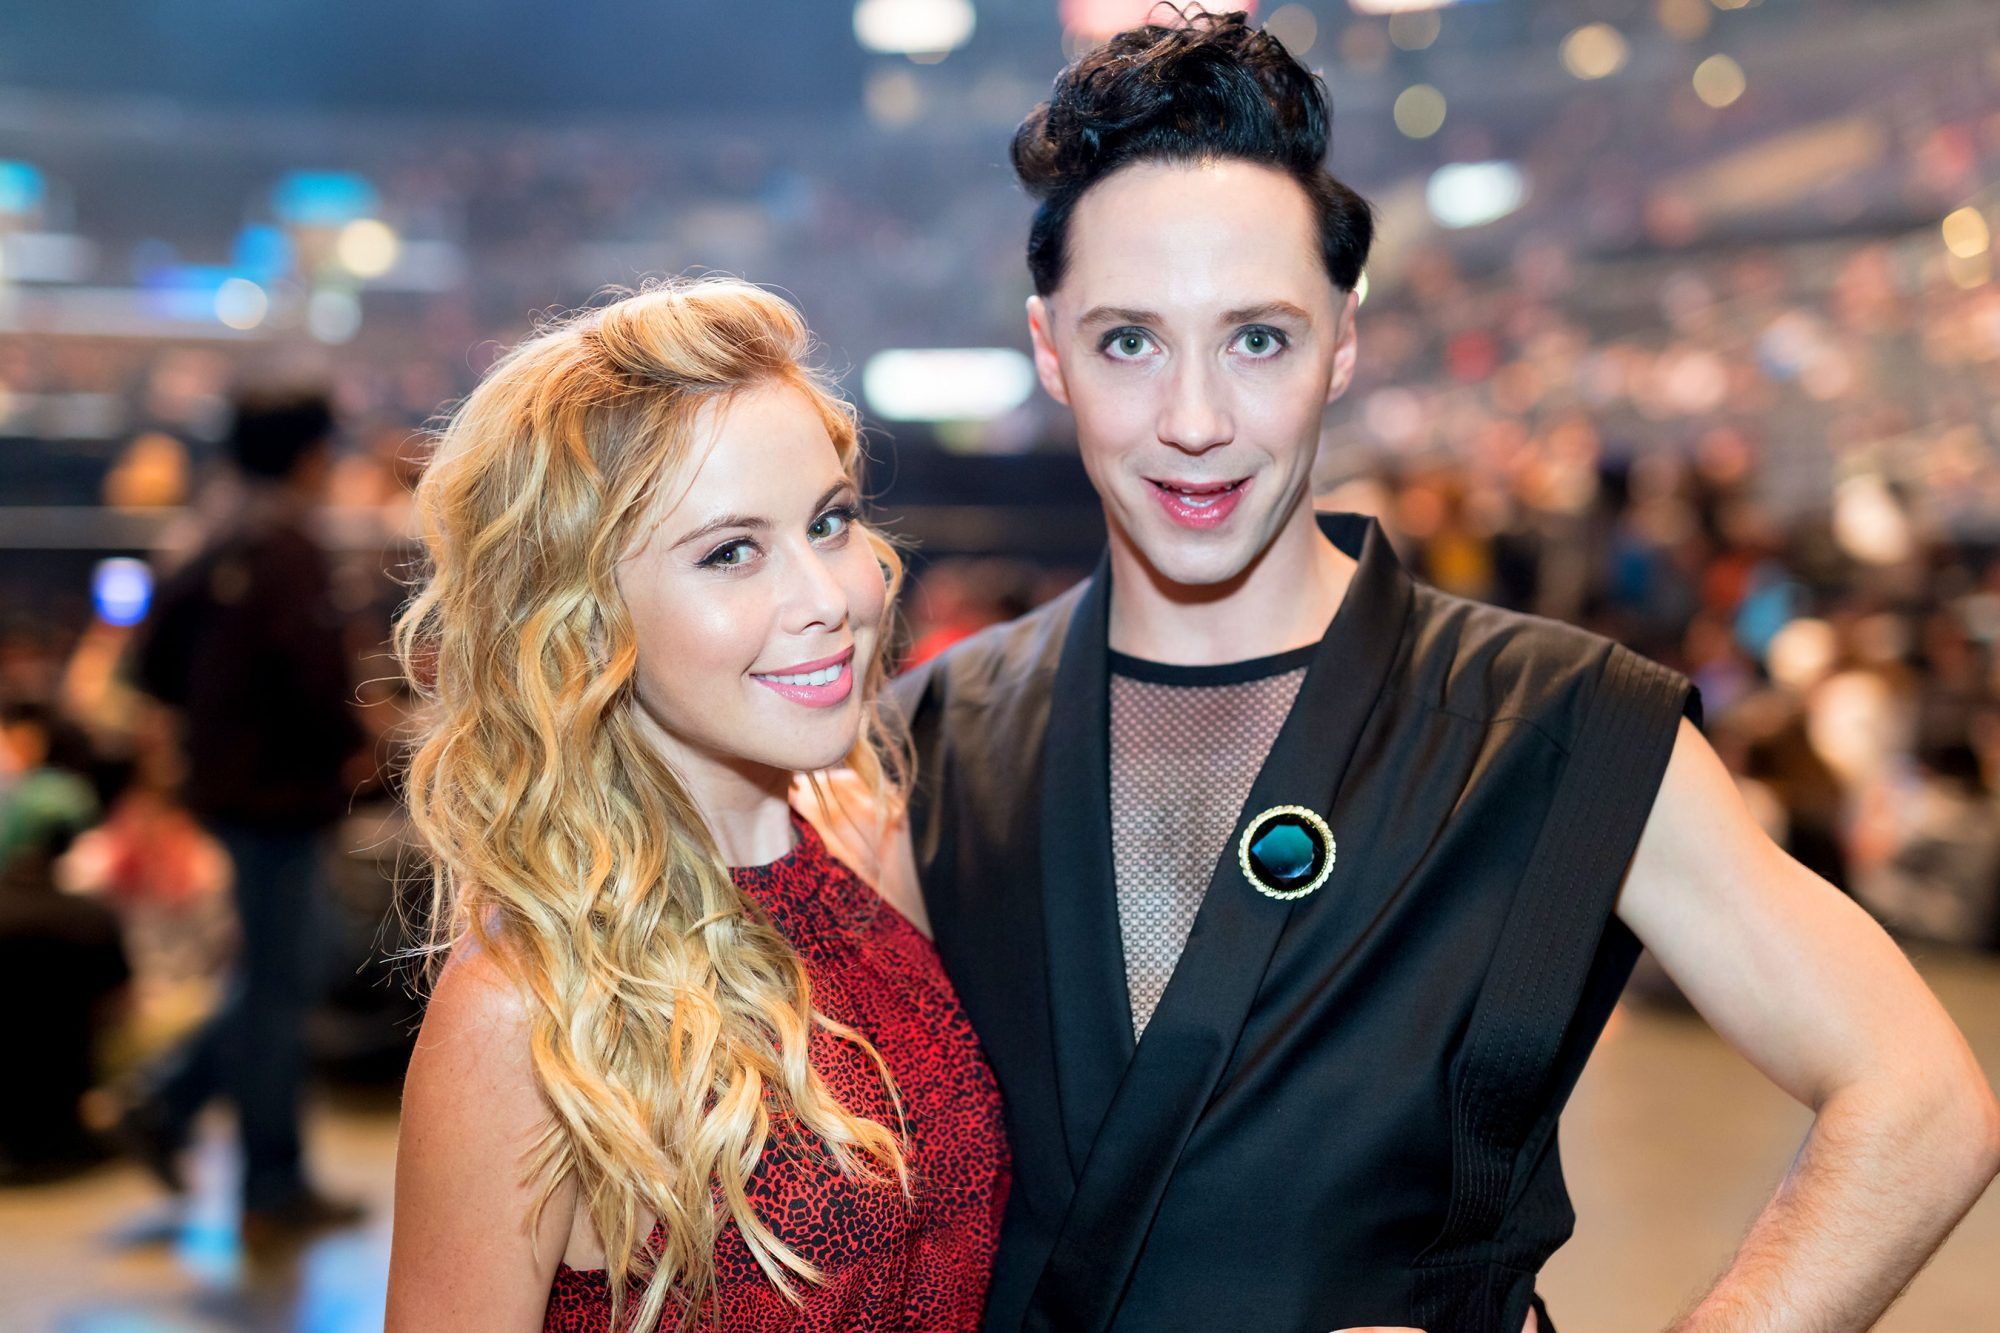 It's a party in Team USAwith these Olympian hosting tips from Tara Lipinski and Johnny Weir